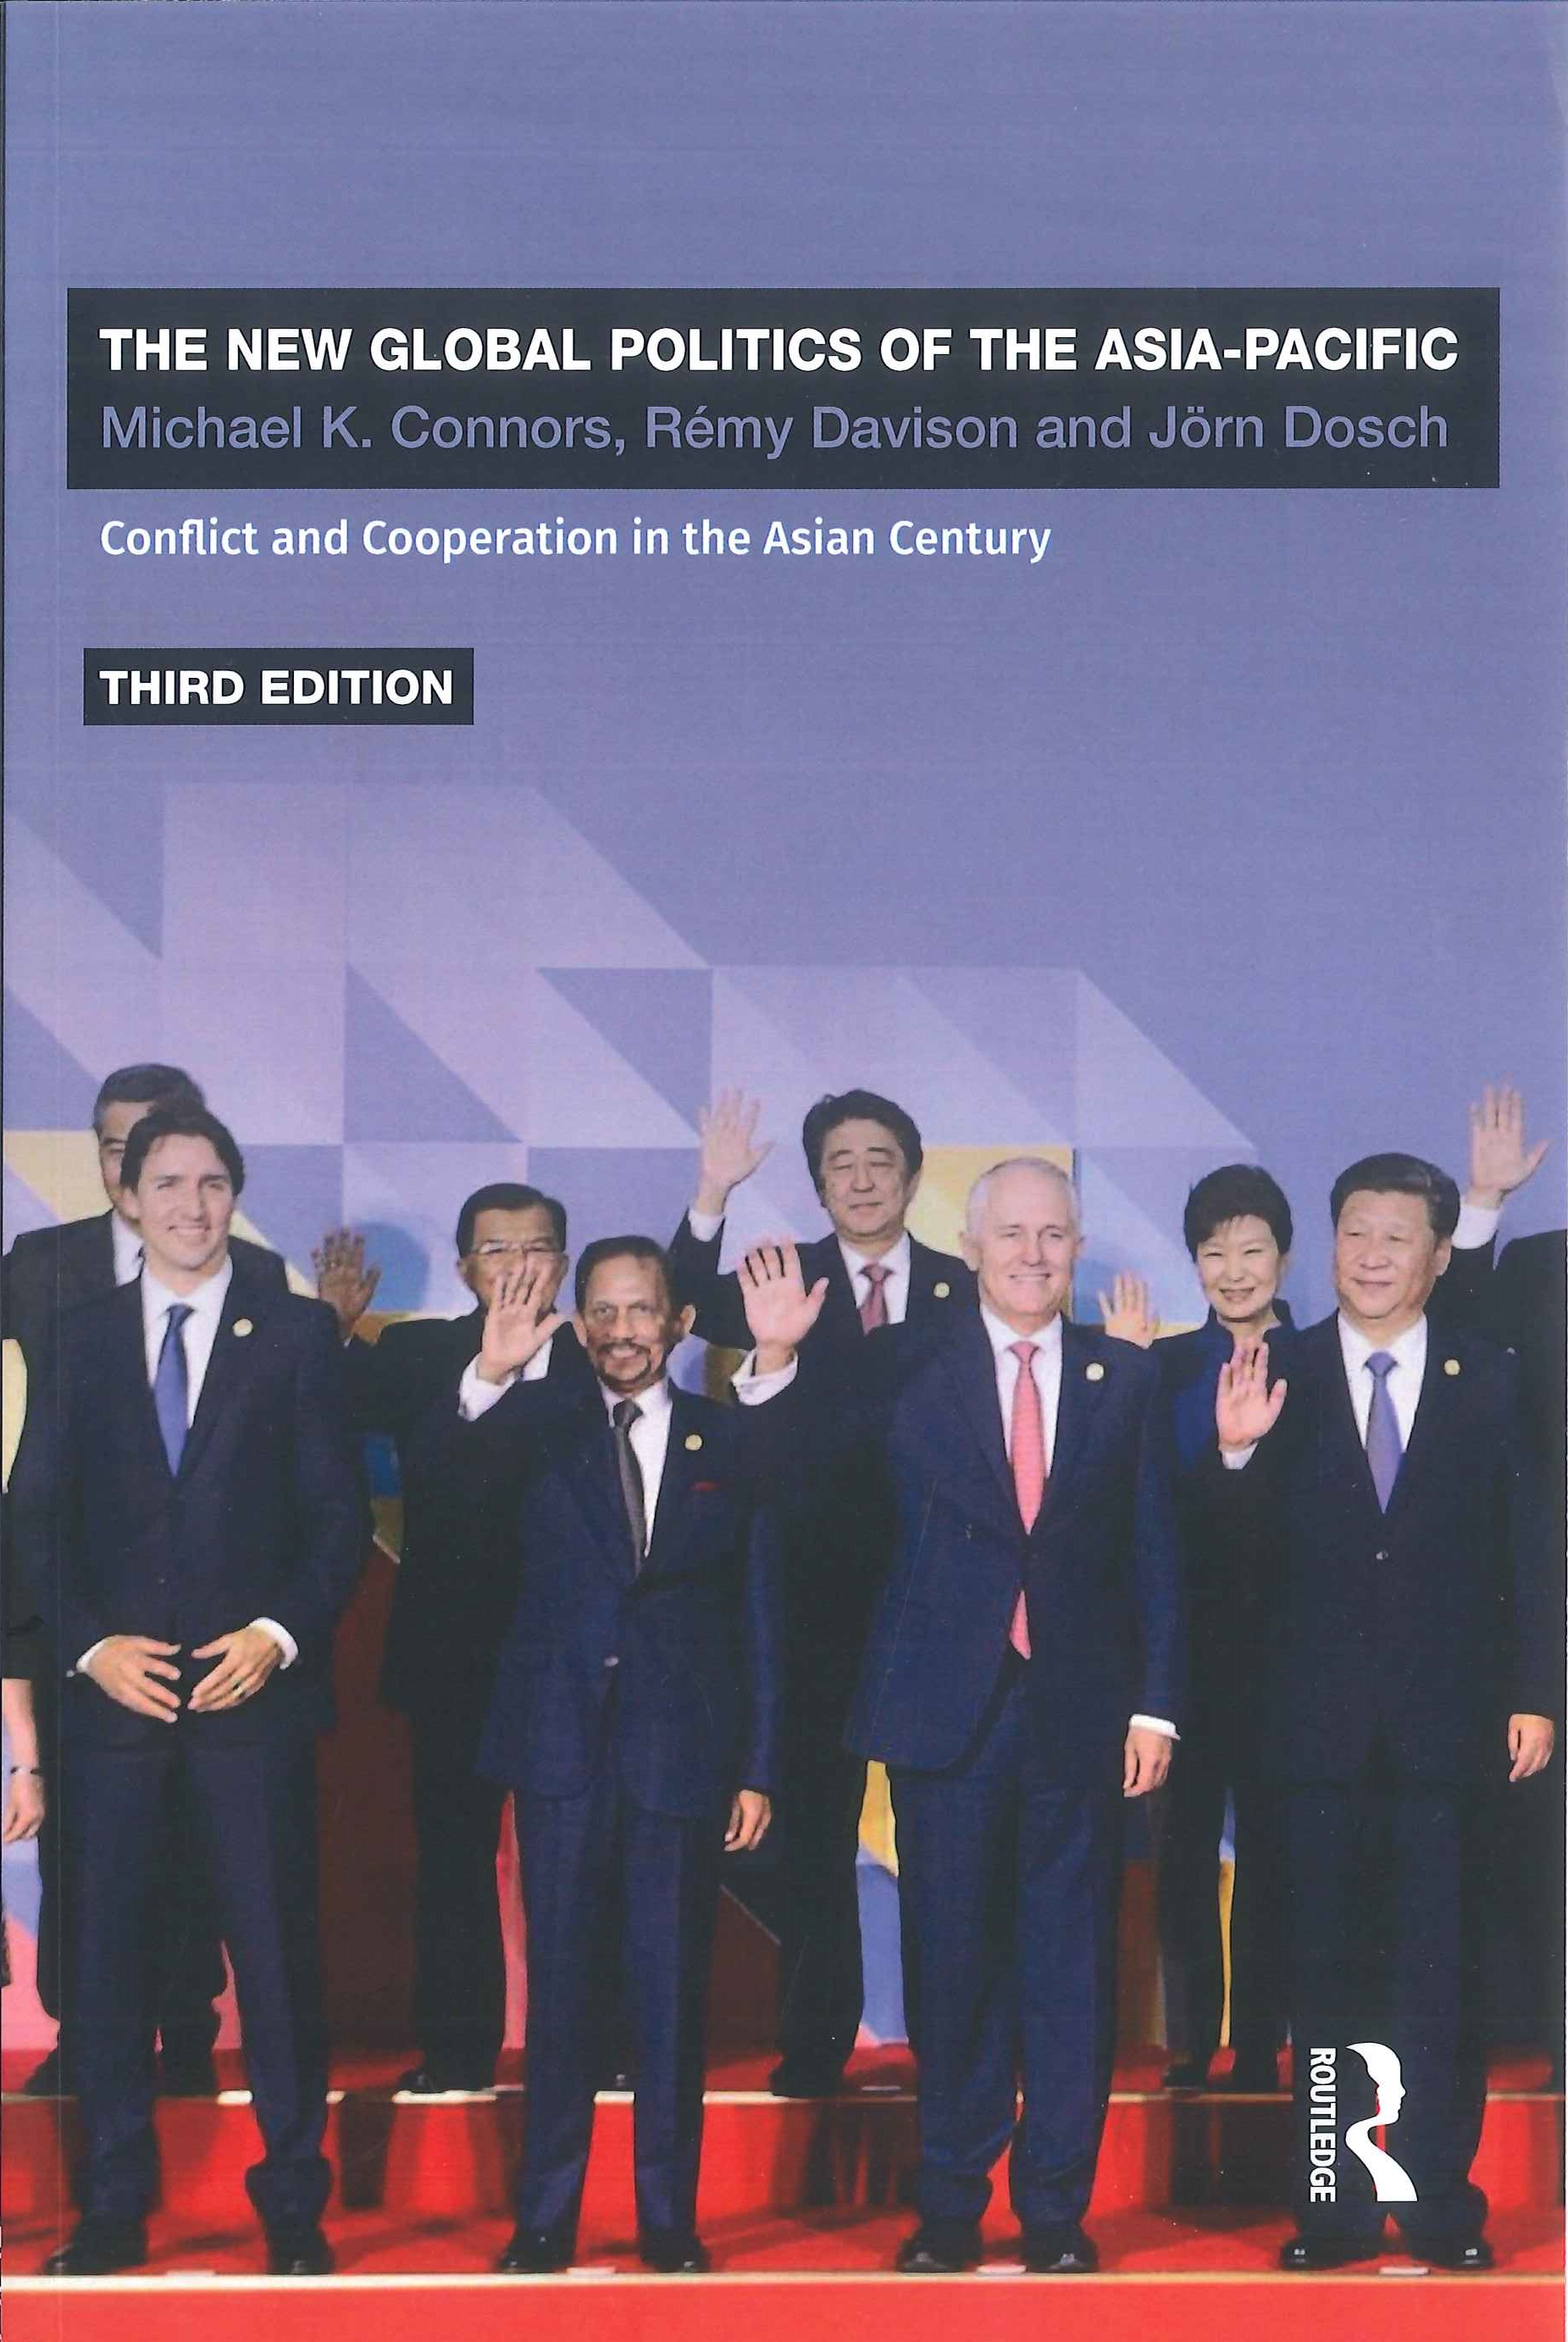 The new global politics of the Asia-Pacific:conflict and co-operation in the Asian century